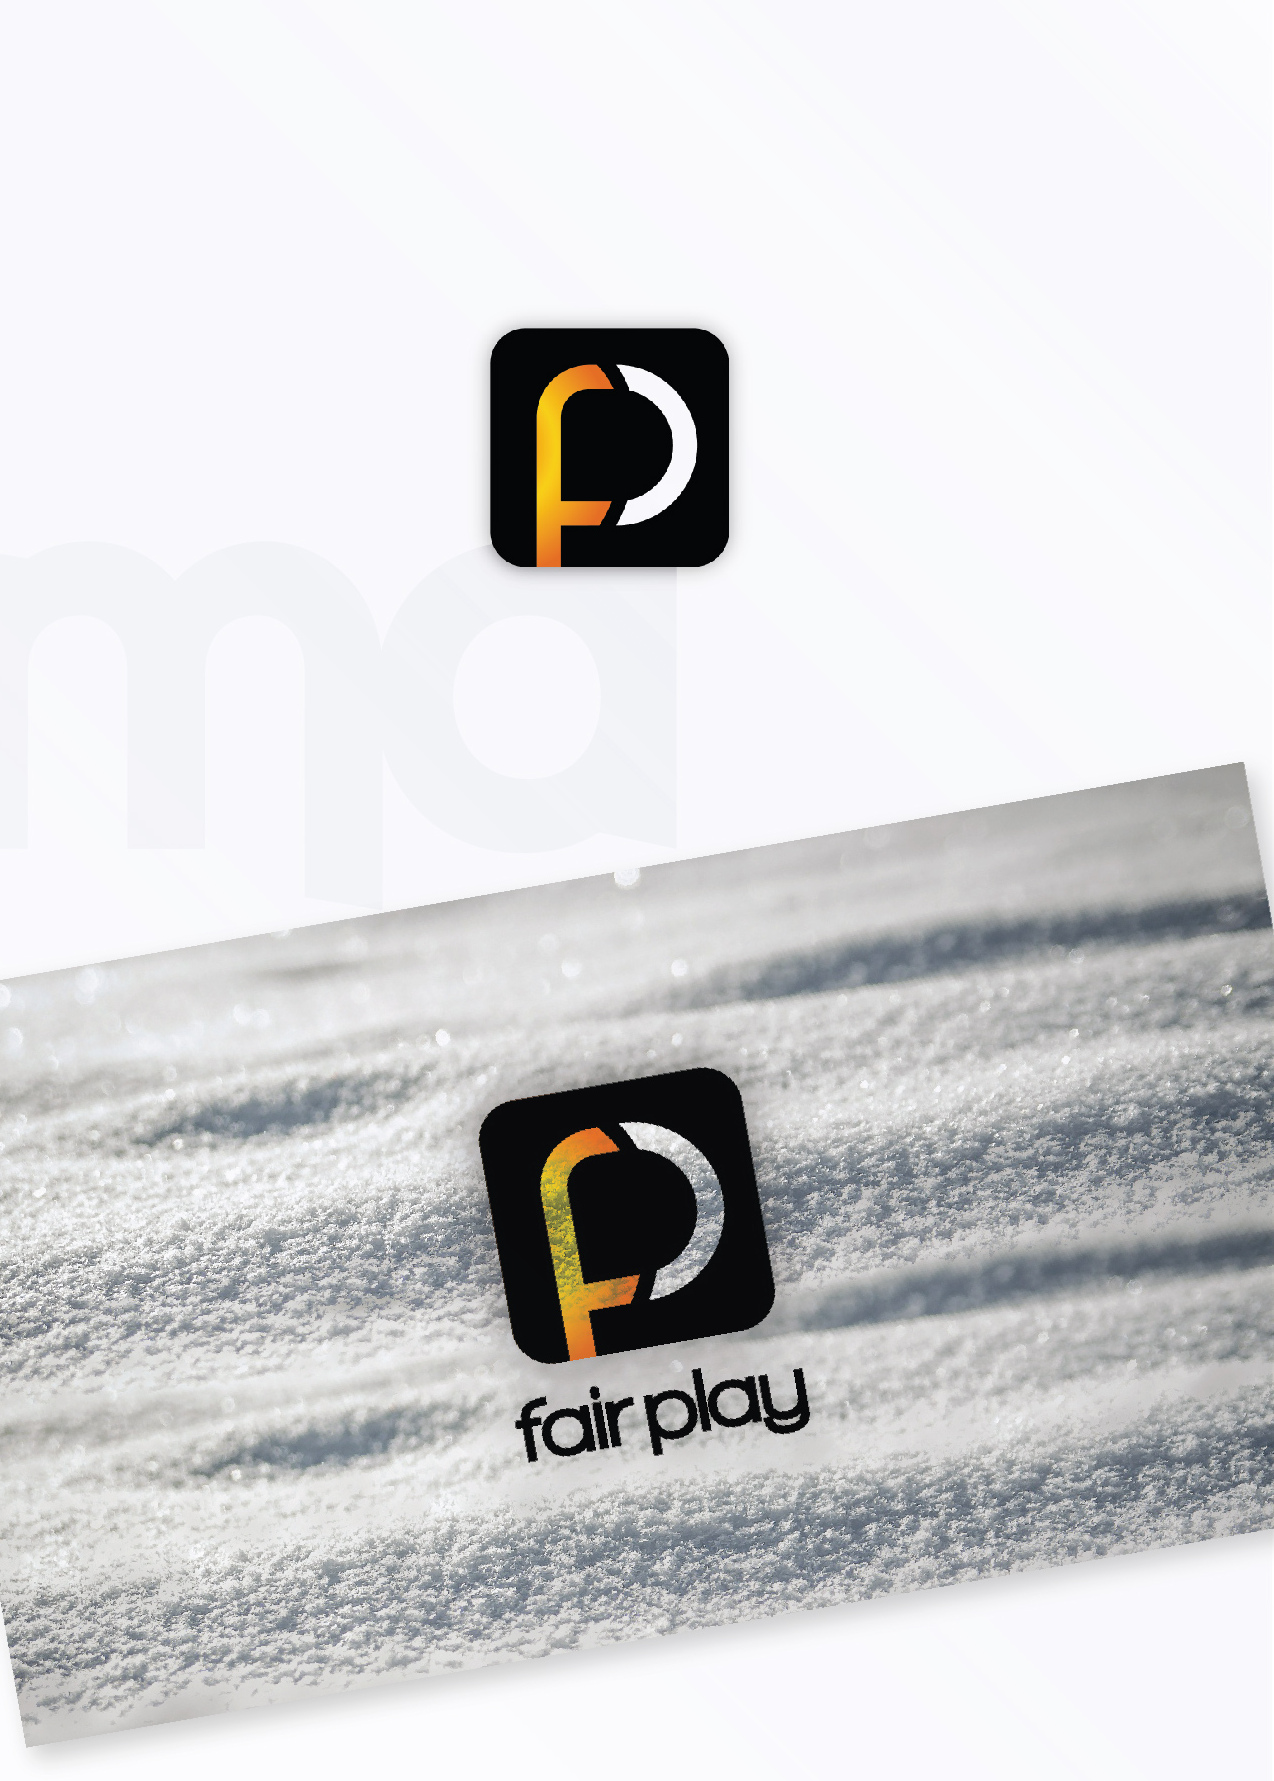 fair play app logo design malaga creative